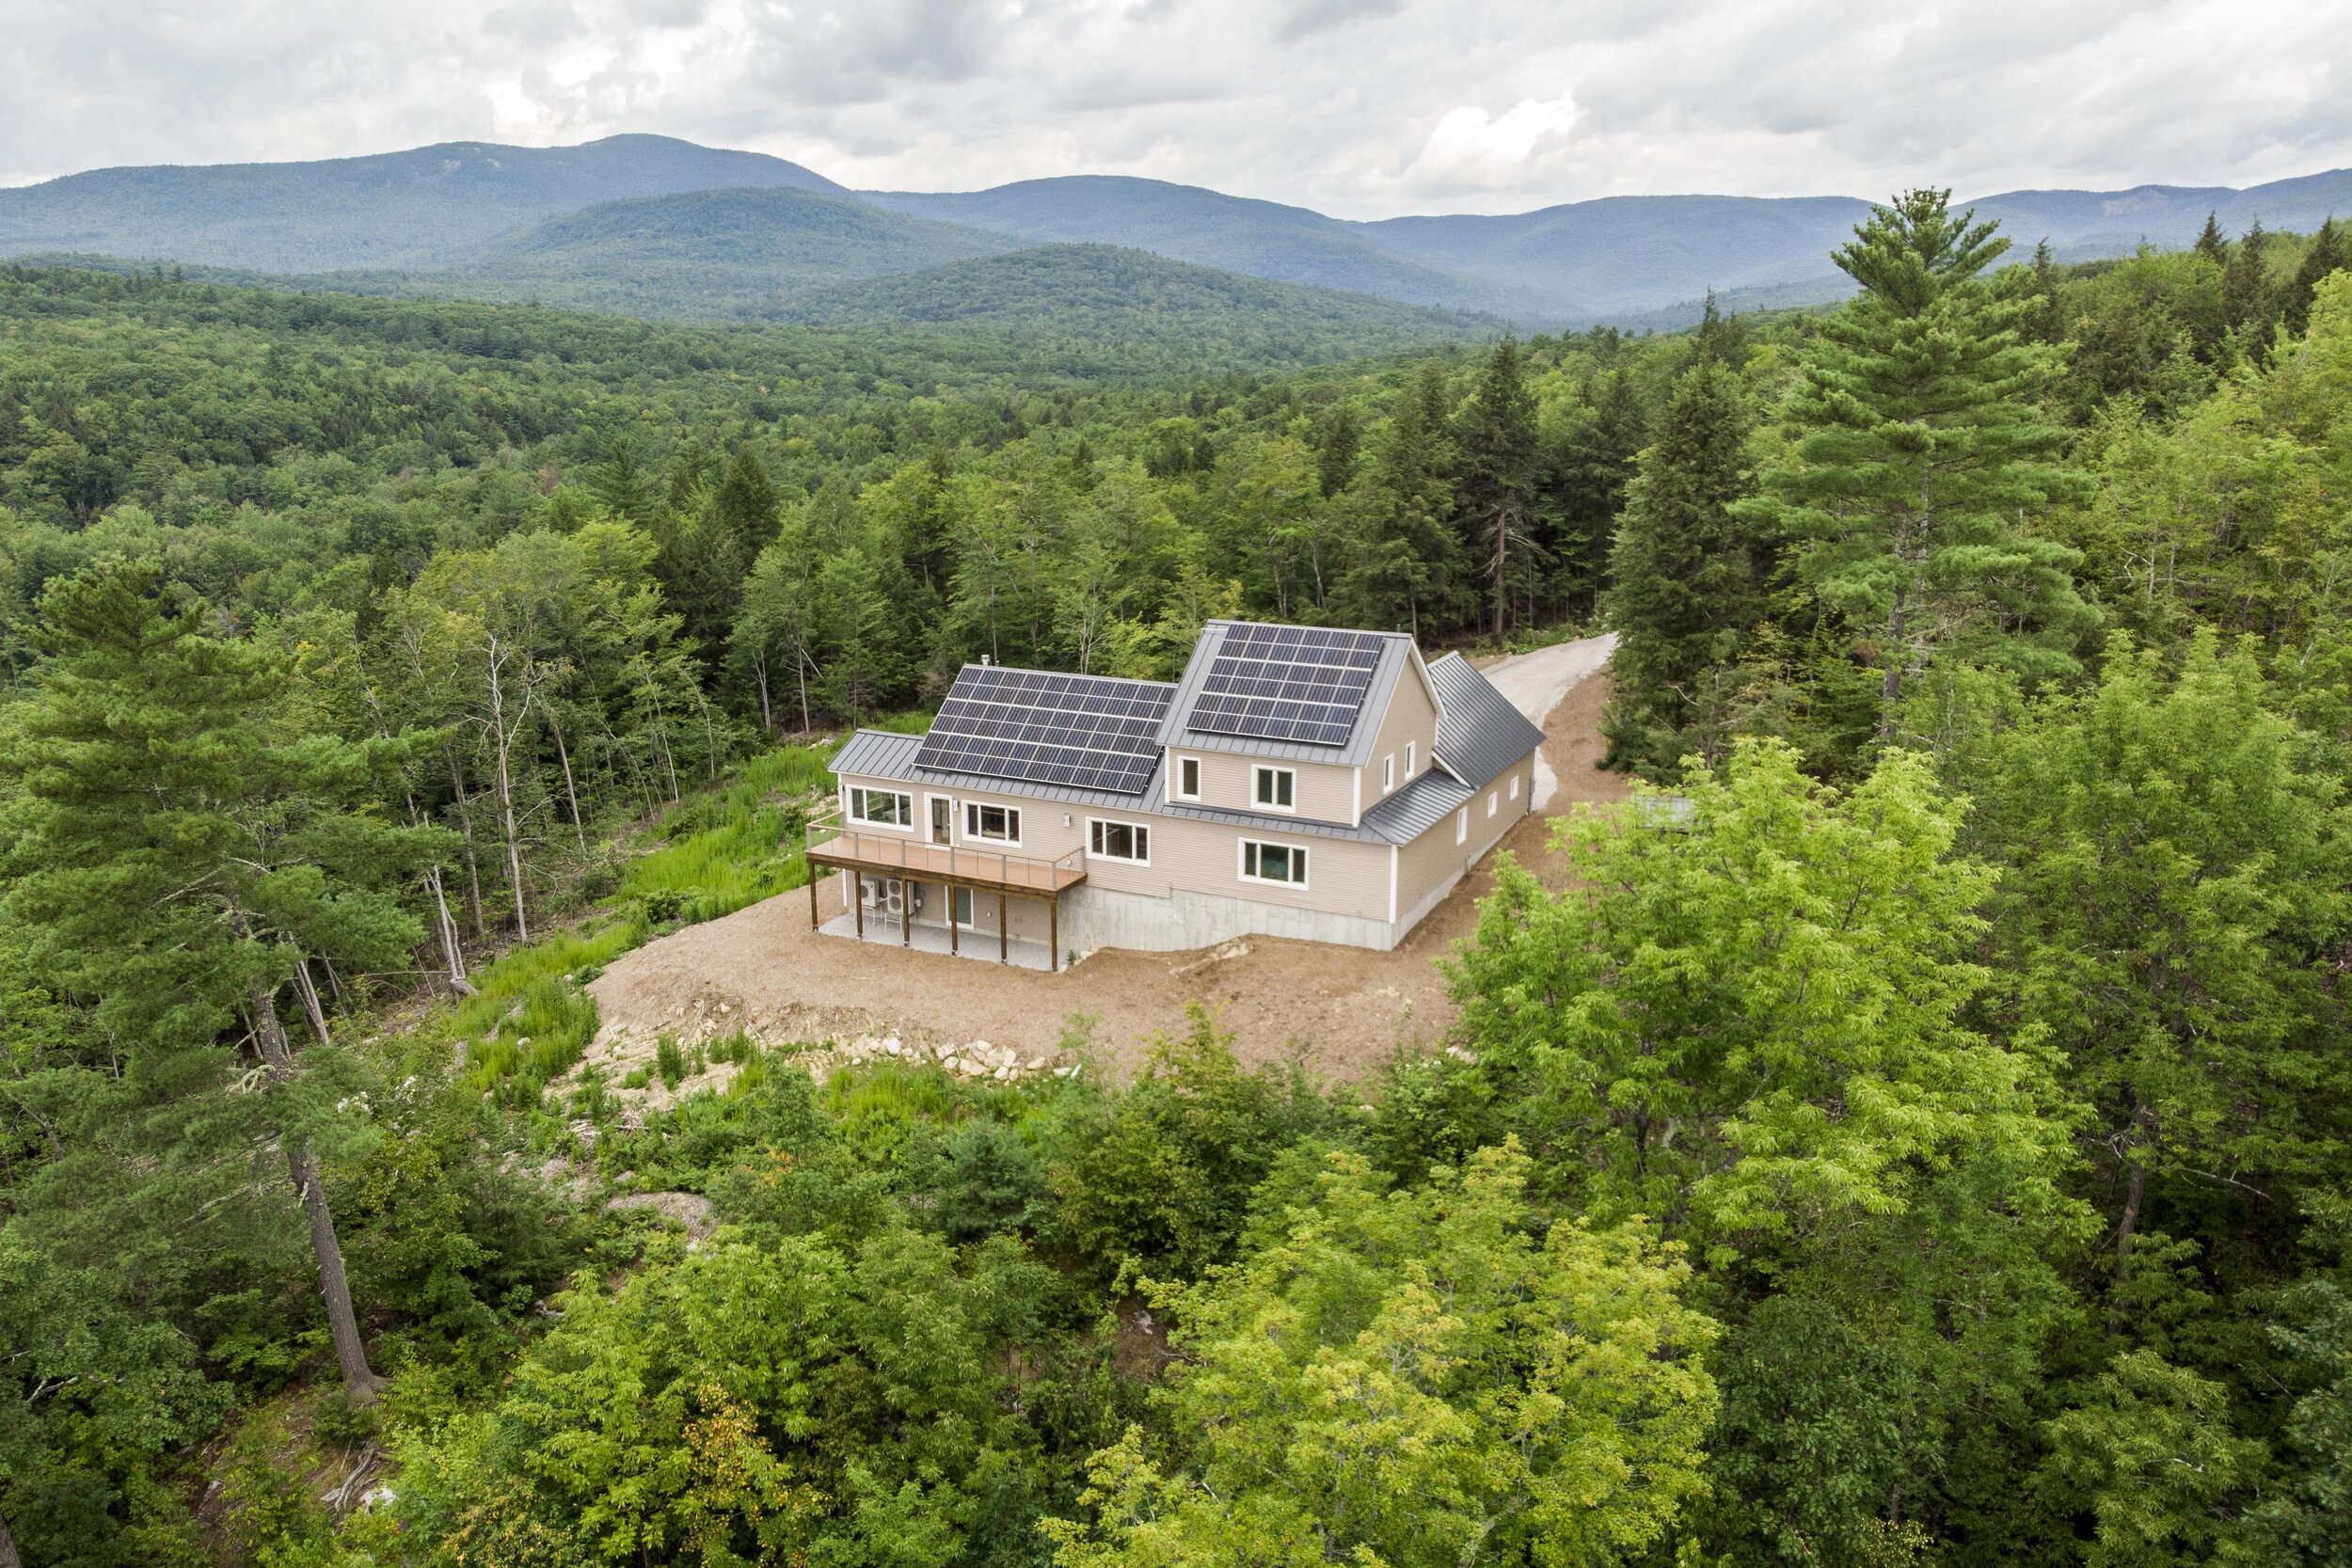 A hilltop site overlooking Kezar Lake in western Maine proved the perfect spot for a home assembled from prefabricated parts. Thanks to a 15 kW solar array, the building should generate more power than it consumes on an annual basis.